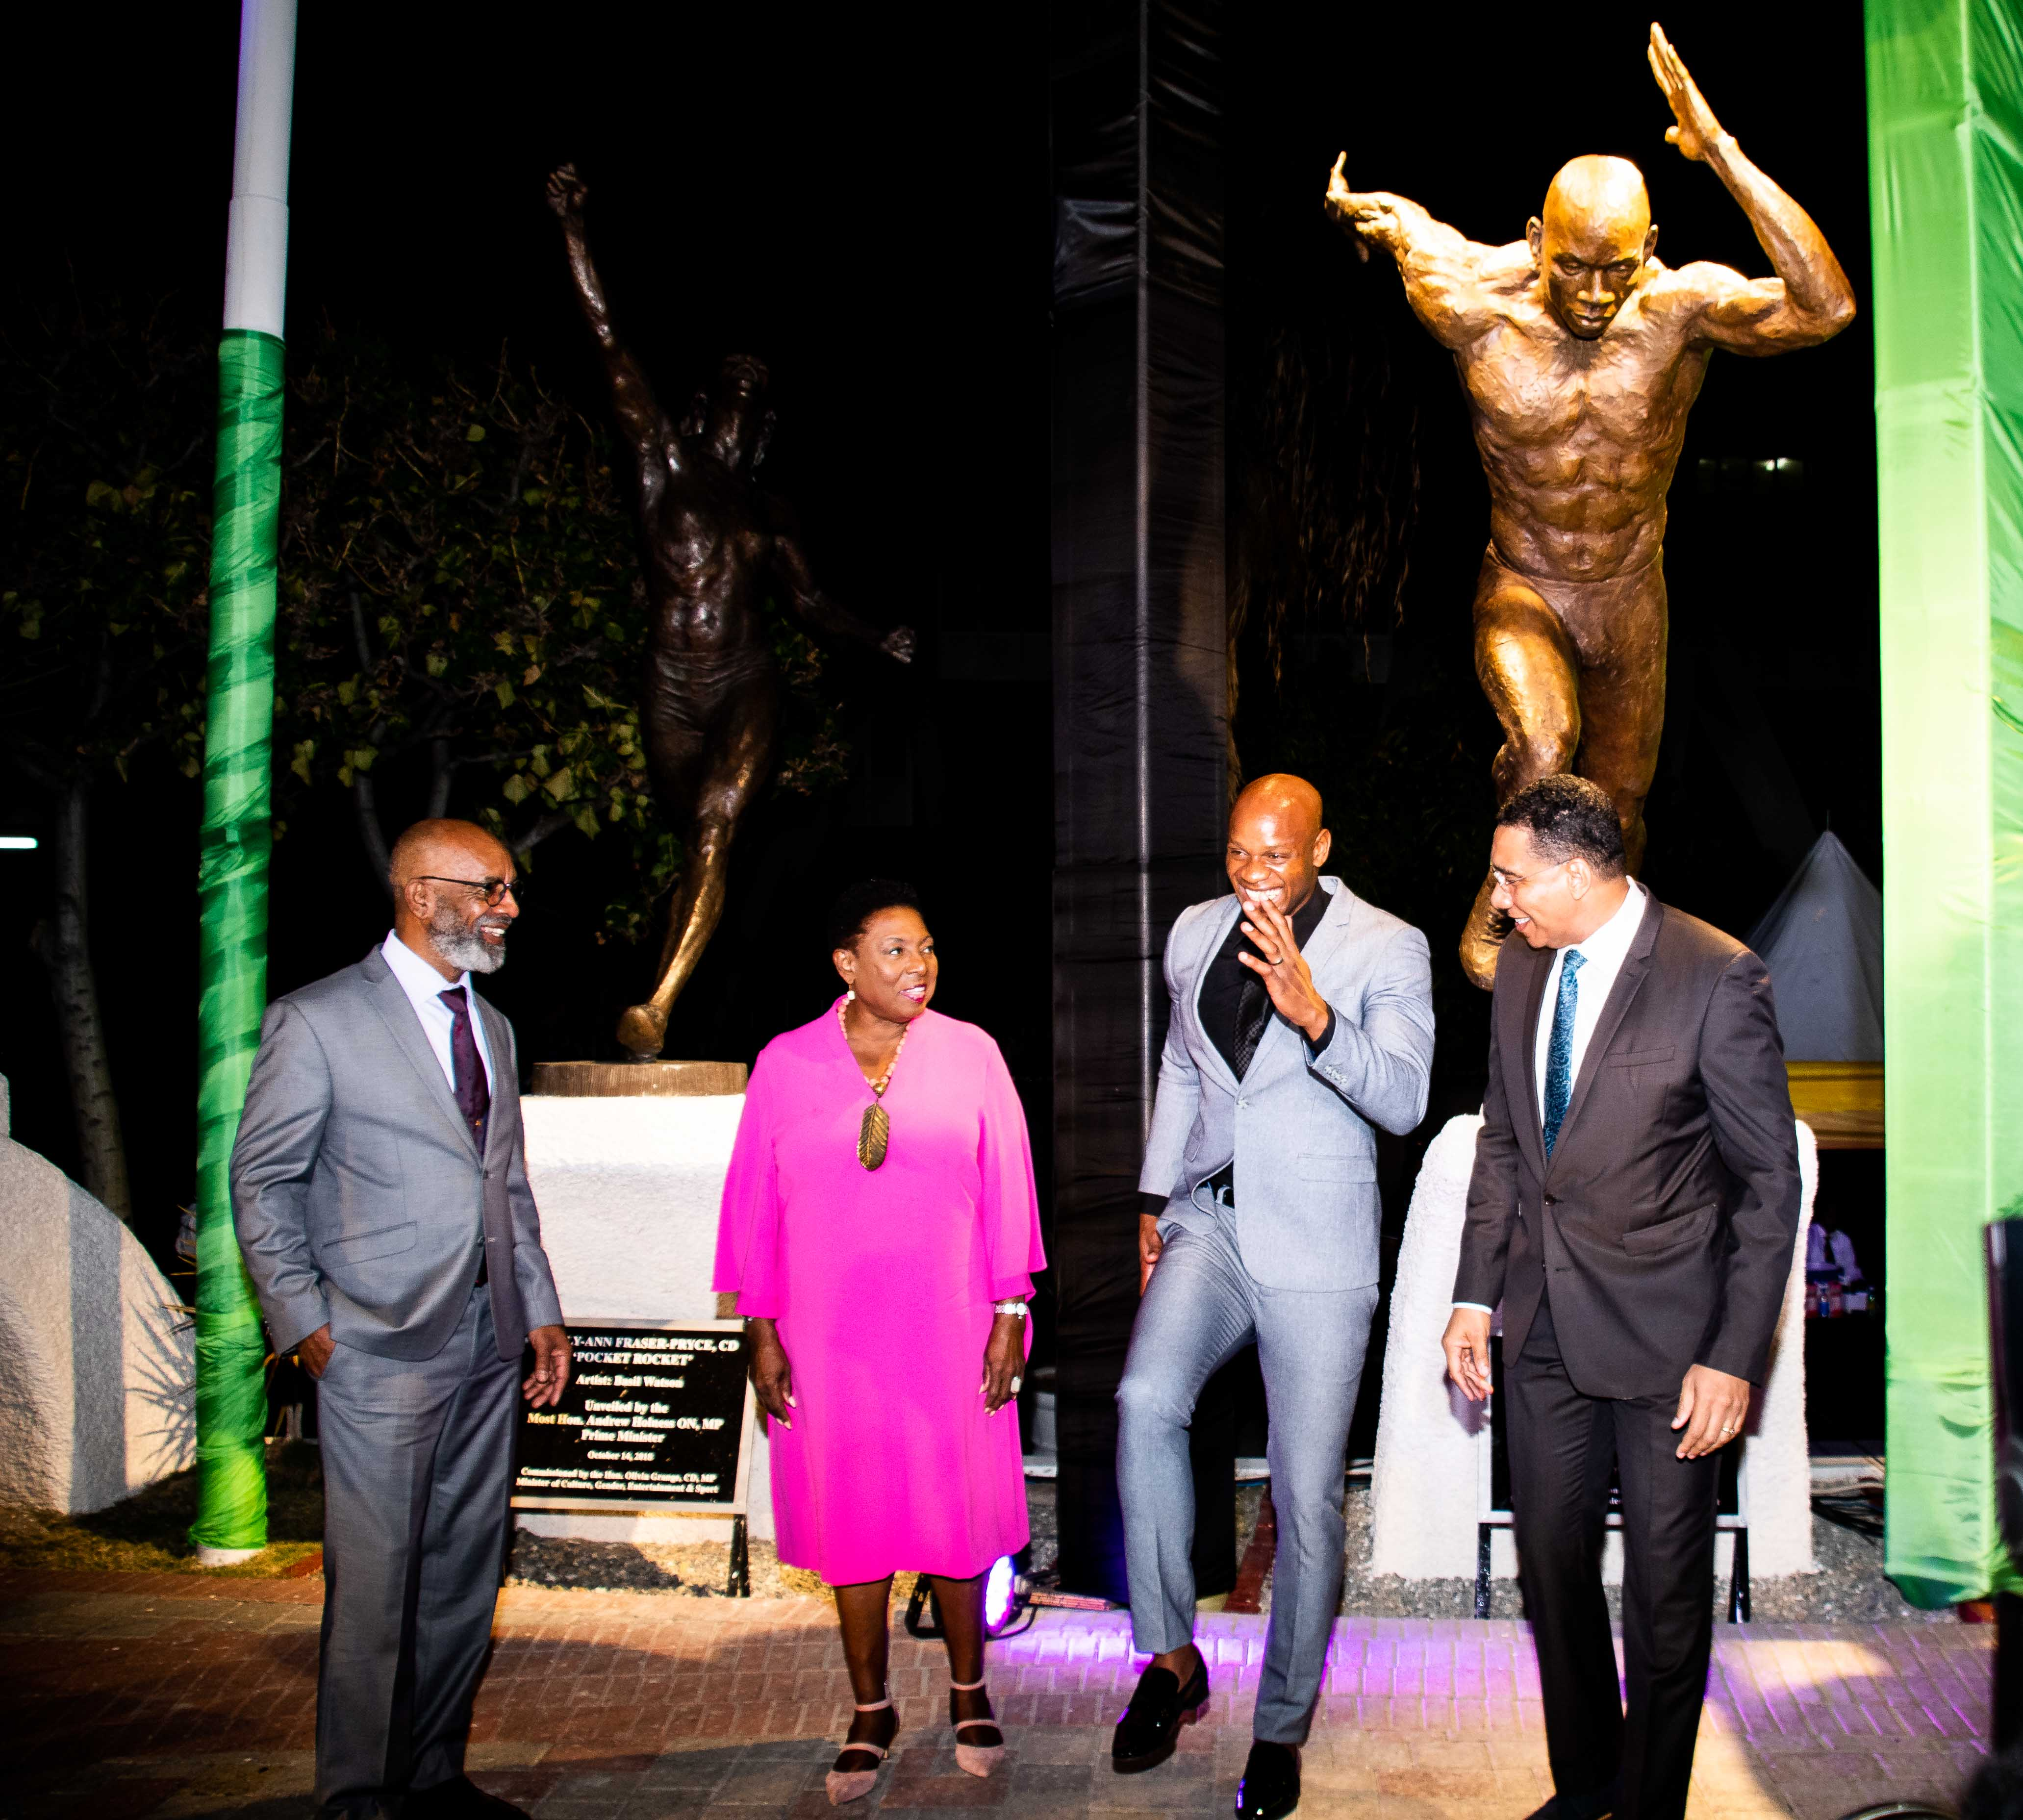 Asafa Powell statue unveil at the National Stadium in Kingston